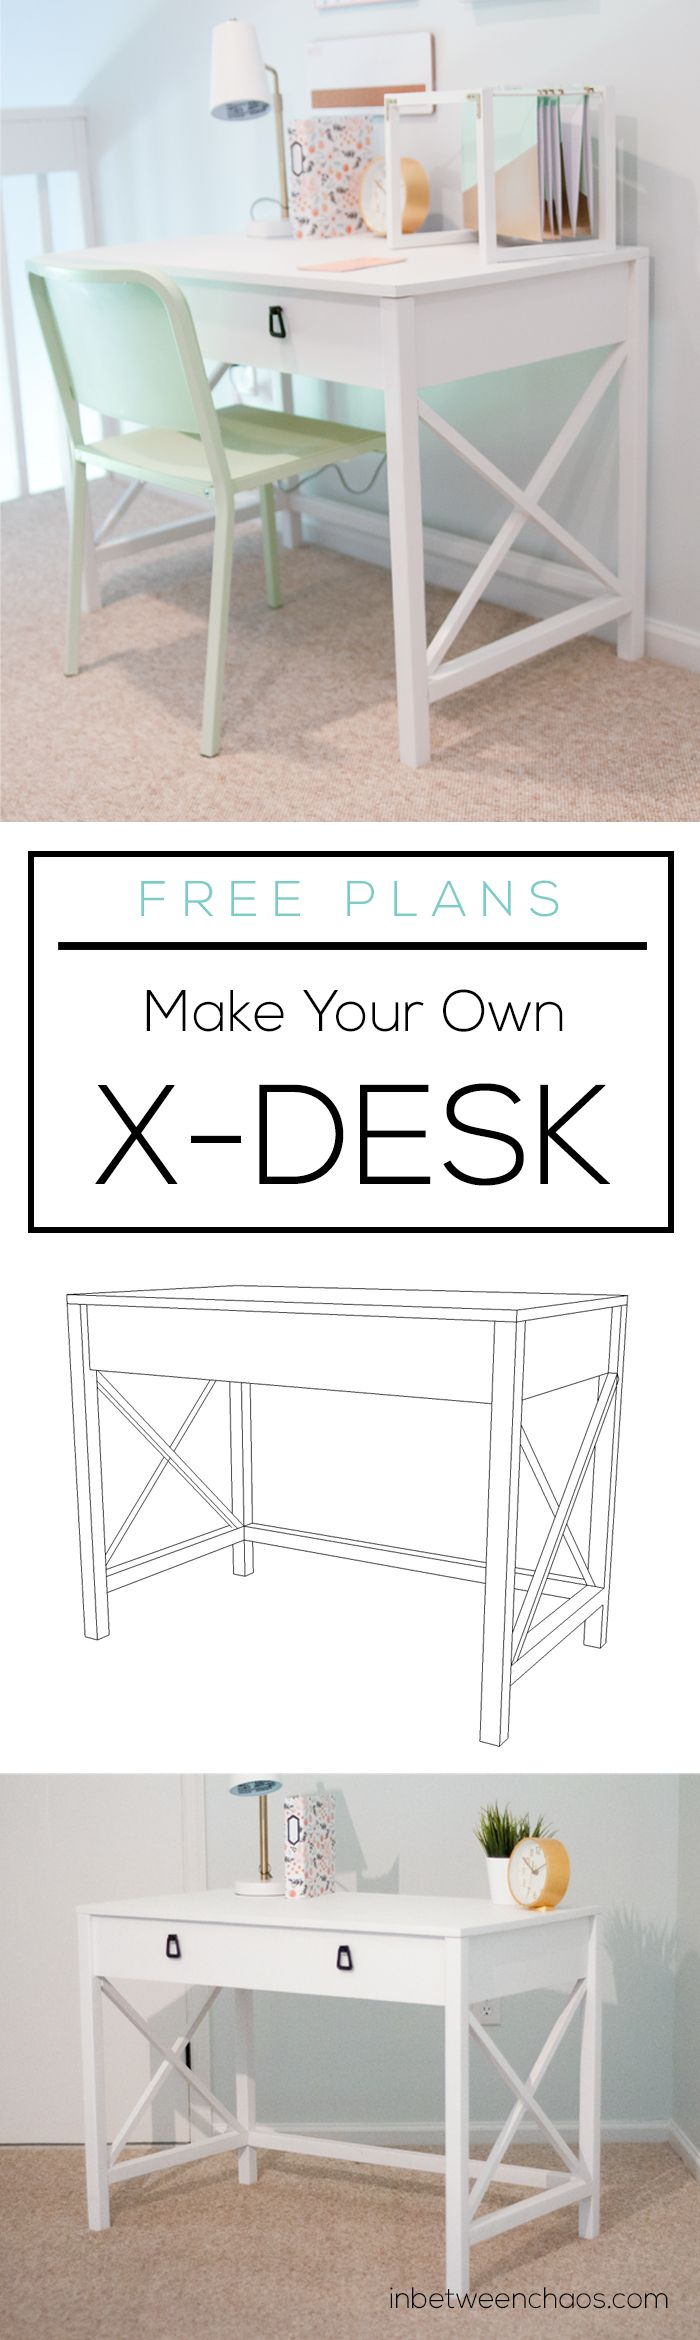 X Desk Plans | inbetweenchaos.com